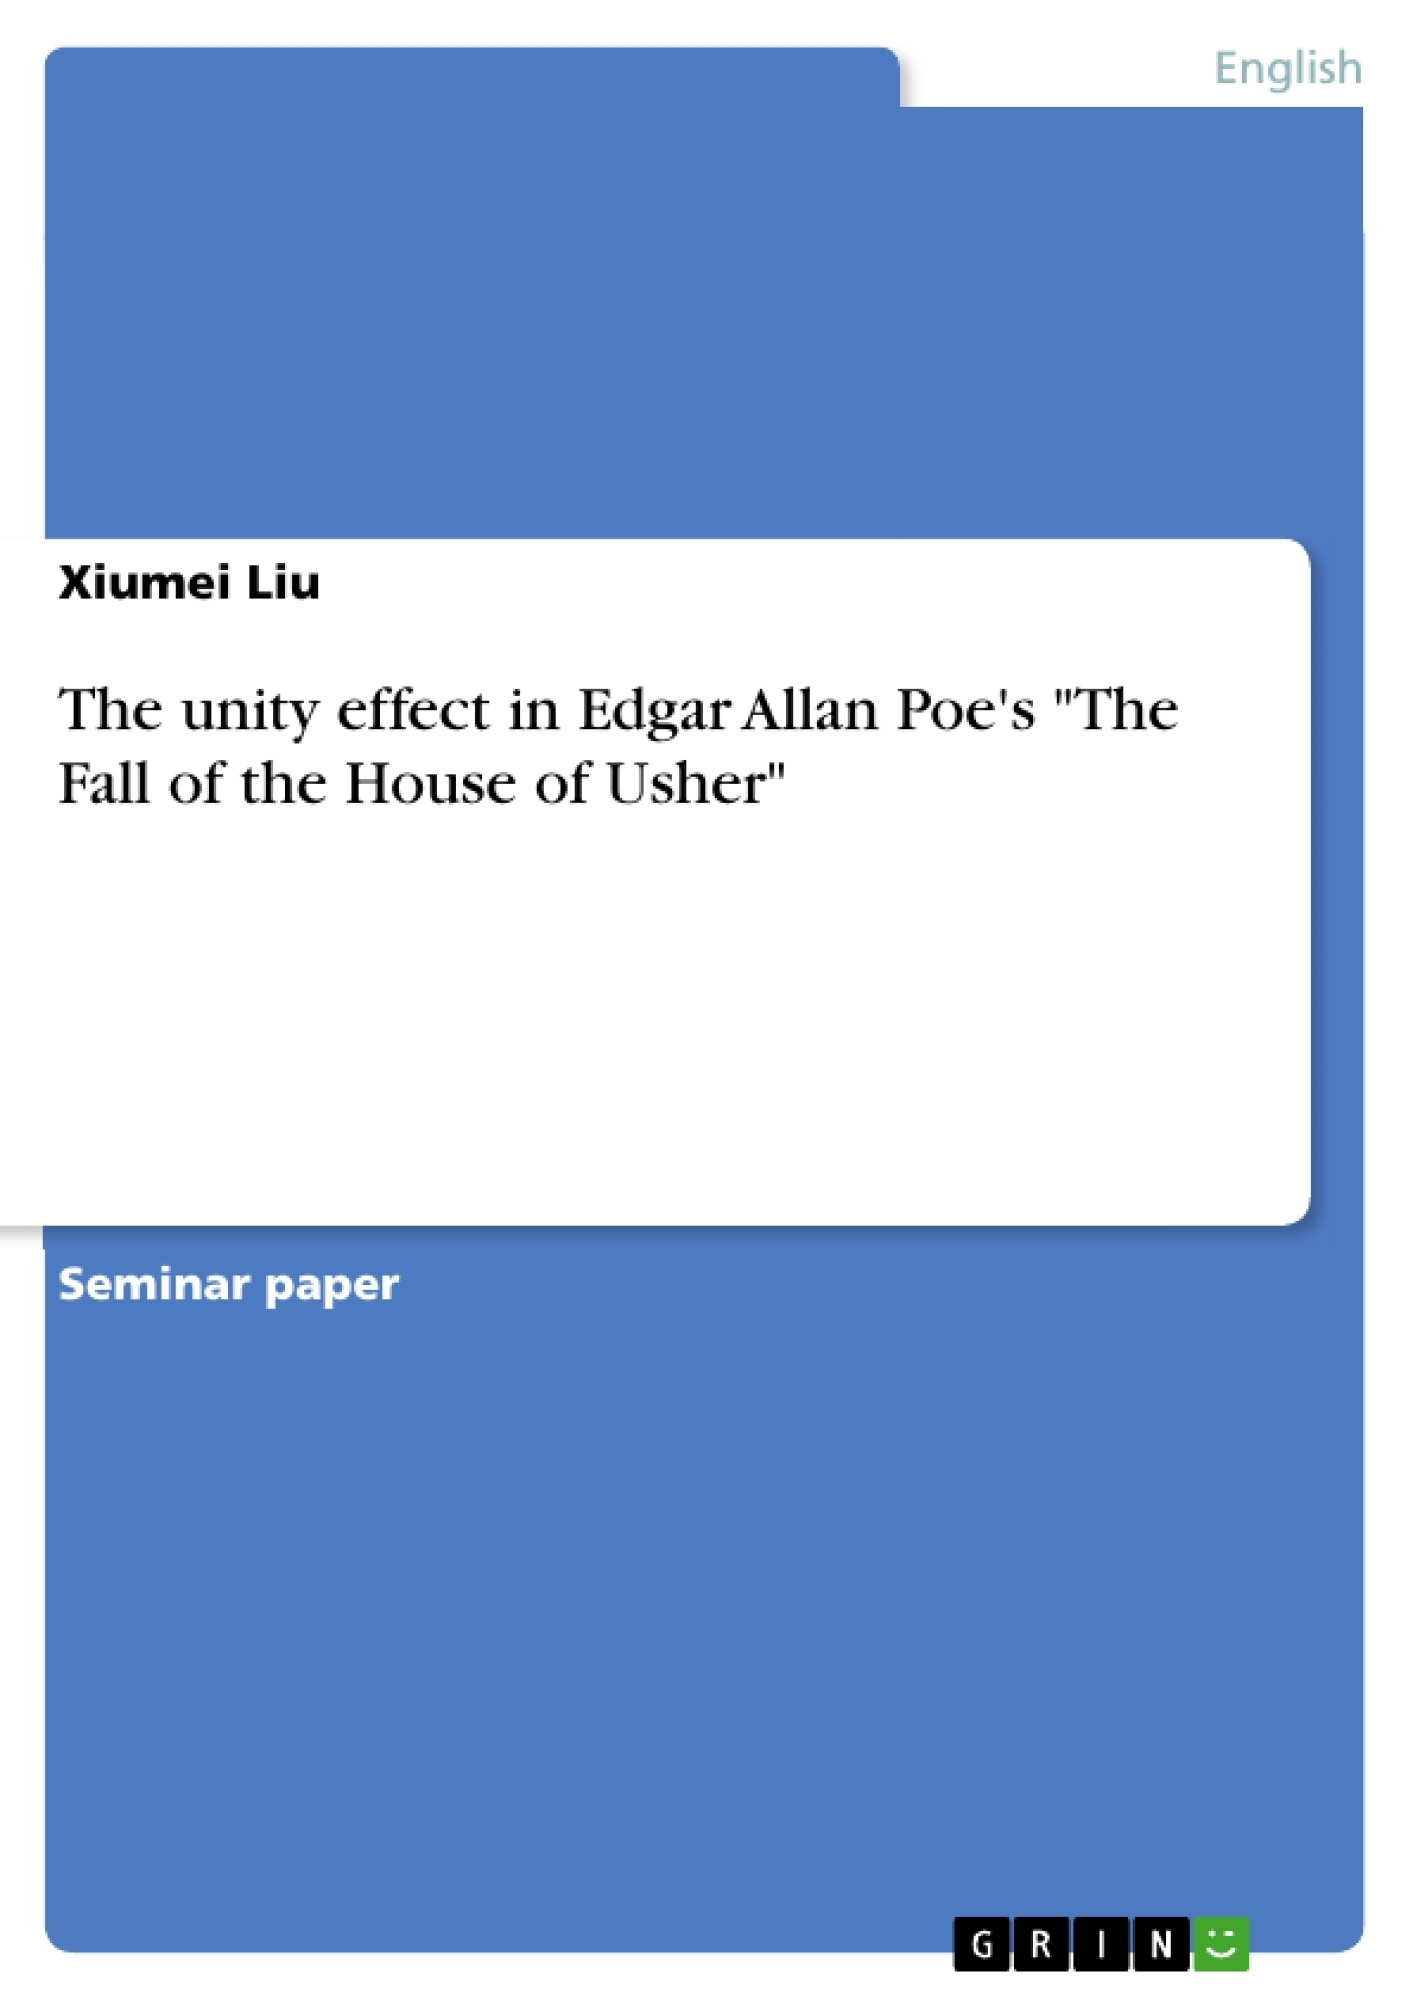 the unity effect in edgar allan poe s the fall of the house of the unity effect in edgar allan poe s the fall of the house of usher publish your master s thesis bachelor s thesis essay or term paper